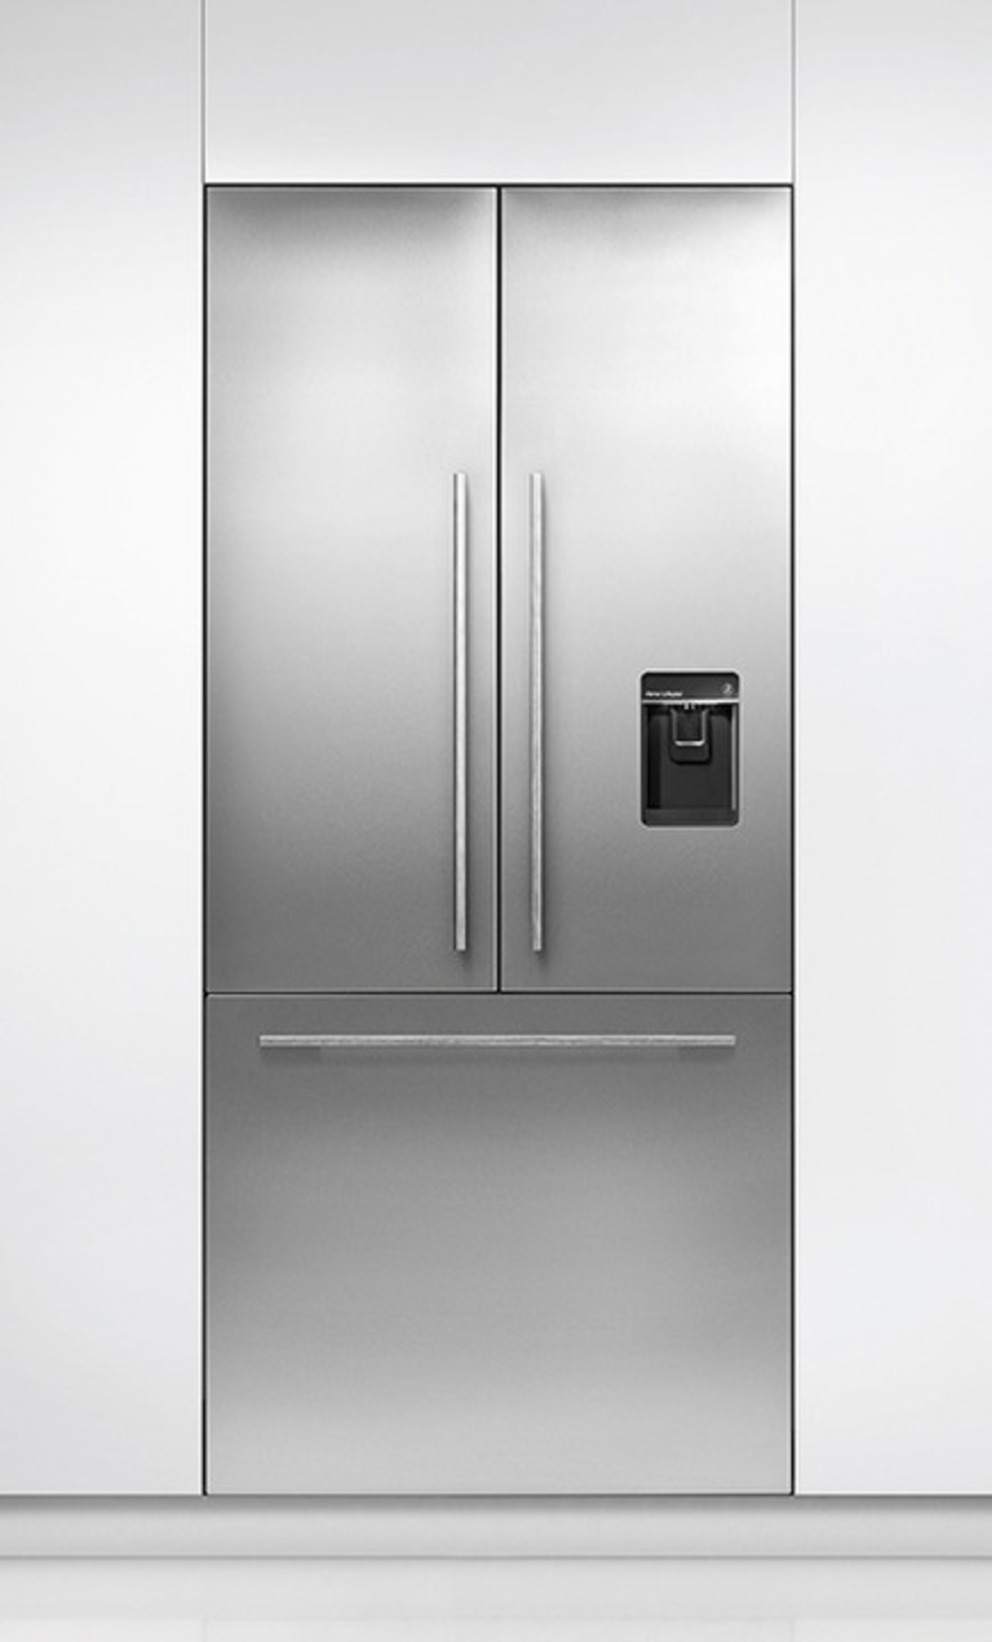 Réfrigérateurs Fisher&Paykel RS36A80U1 + RD3680U (80'' F&P)